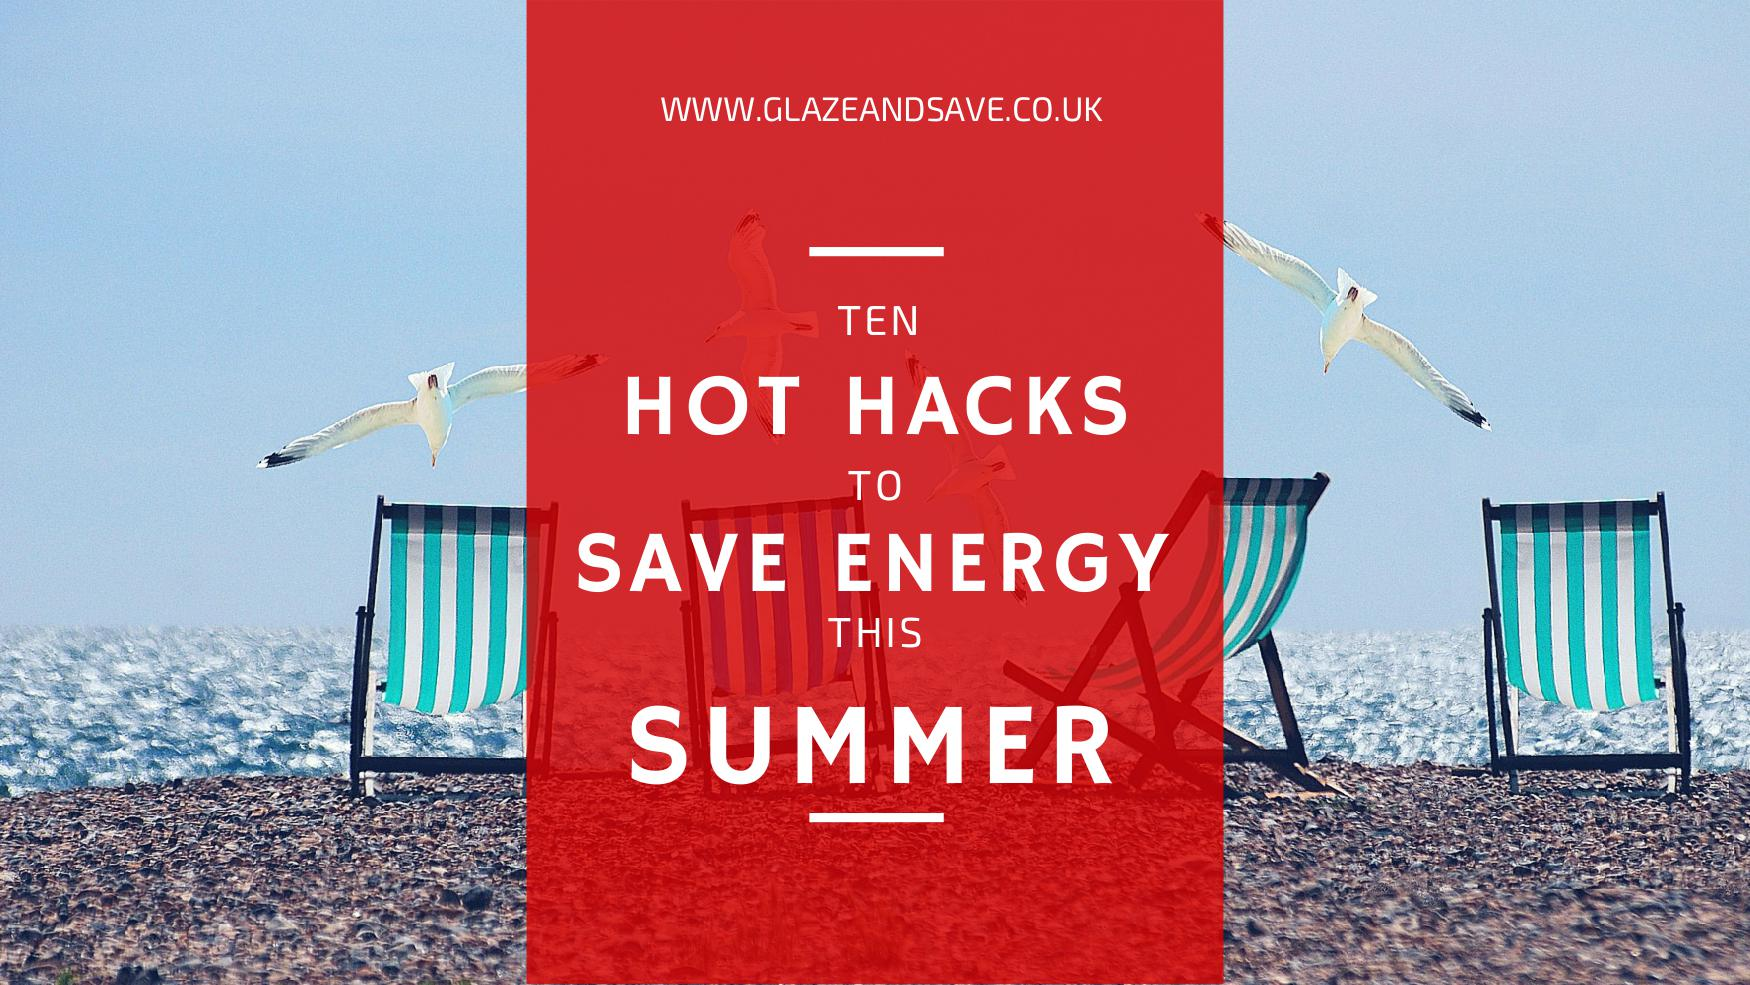 Ten hot hacks to save energy this summer www.glazeandsave.co.uk bespoke magnetic secondary glazing and draughtproofing